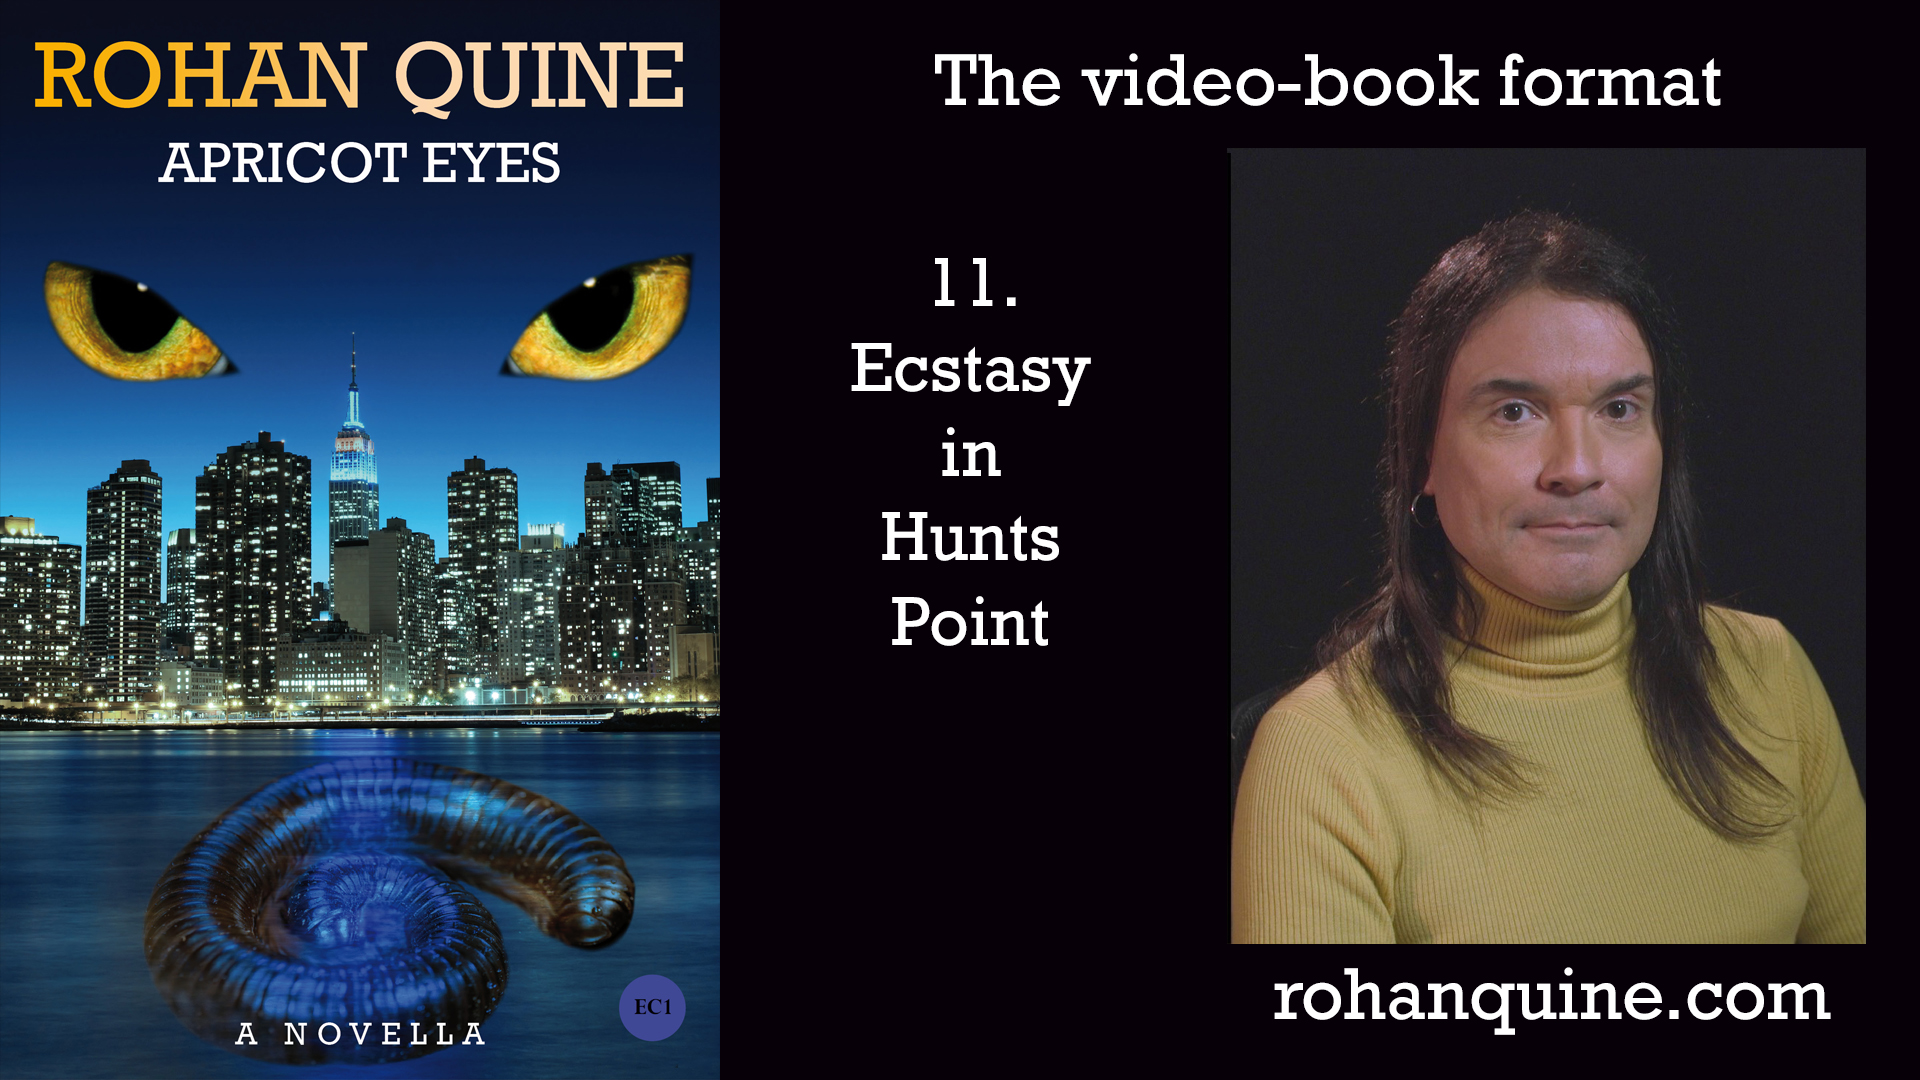 APRICOT EYES by Rohan Quine - video-book format - chapter 11